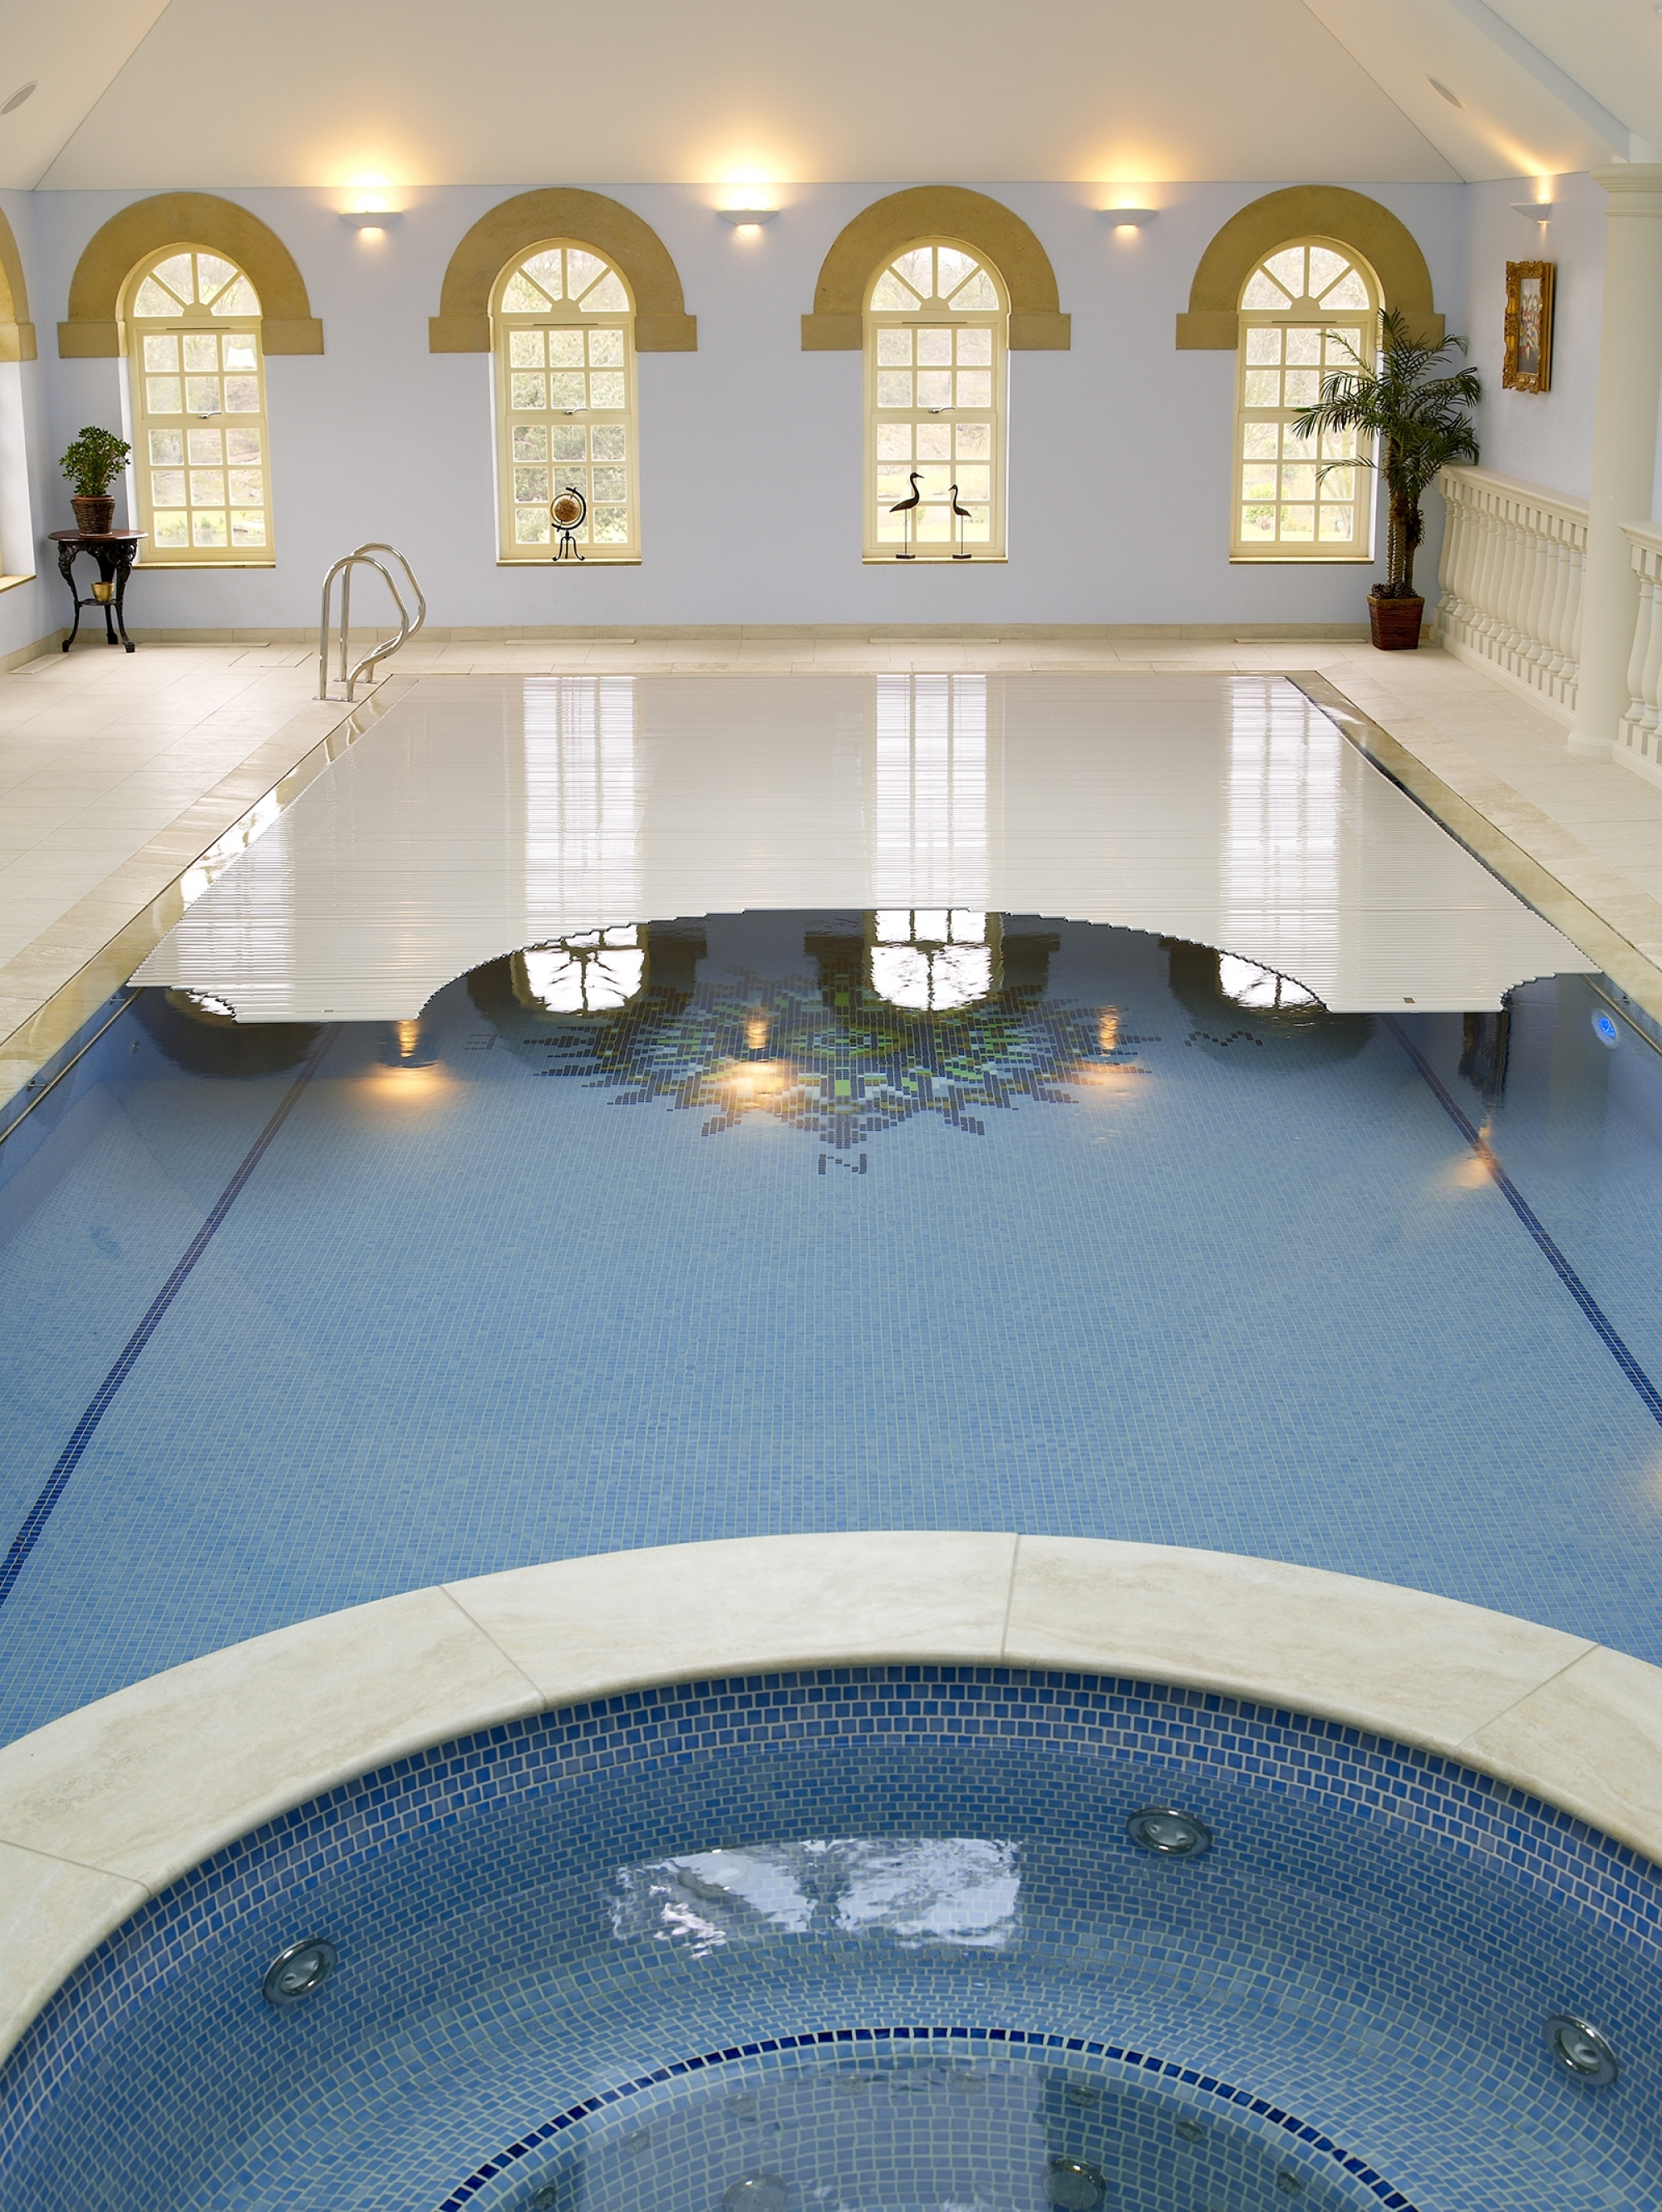 Bespoke swimming pool covers fully-tailored in the UK from design to fabrication...